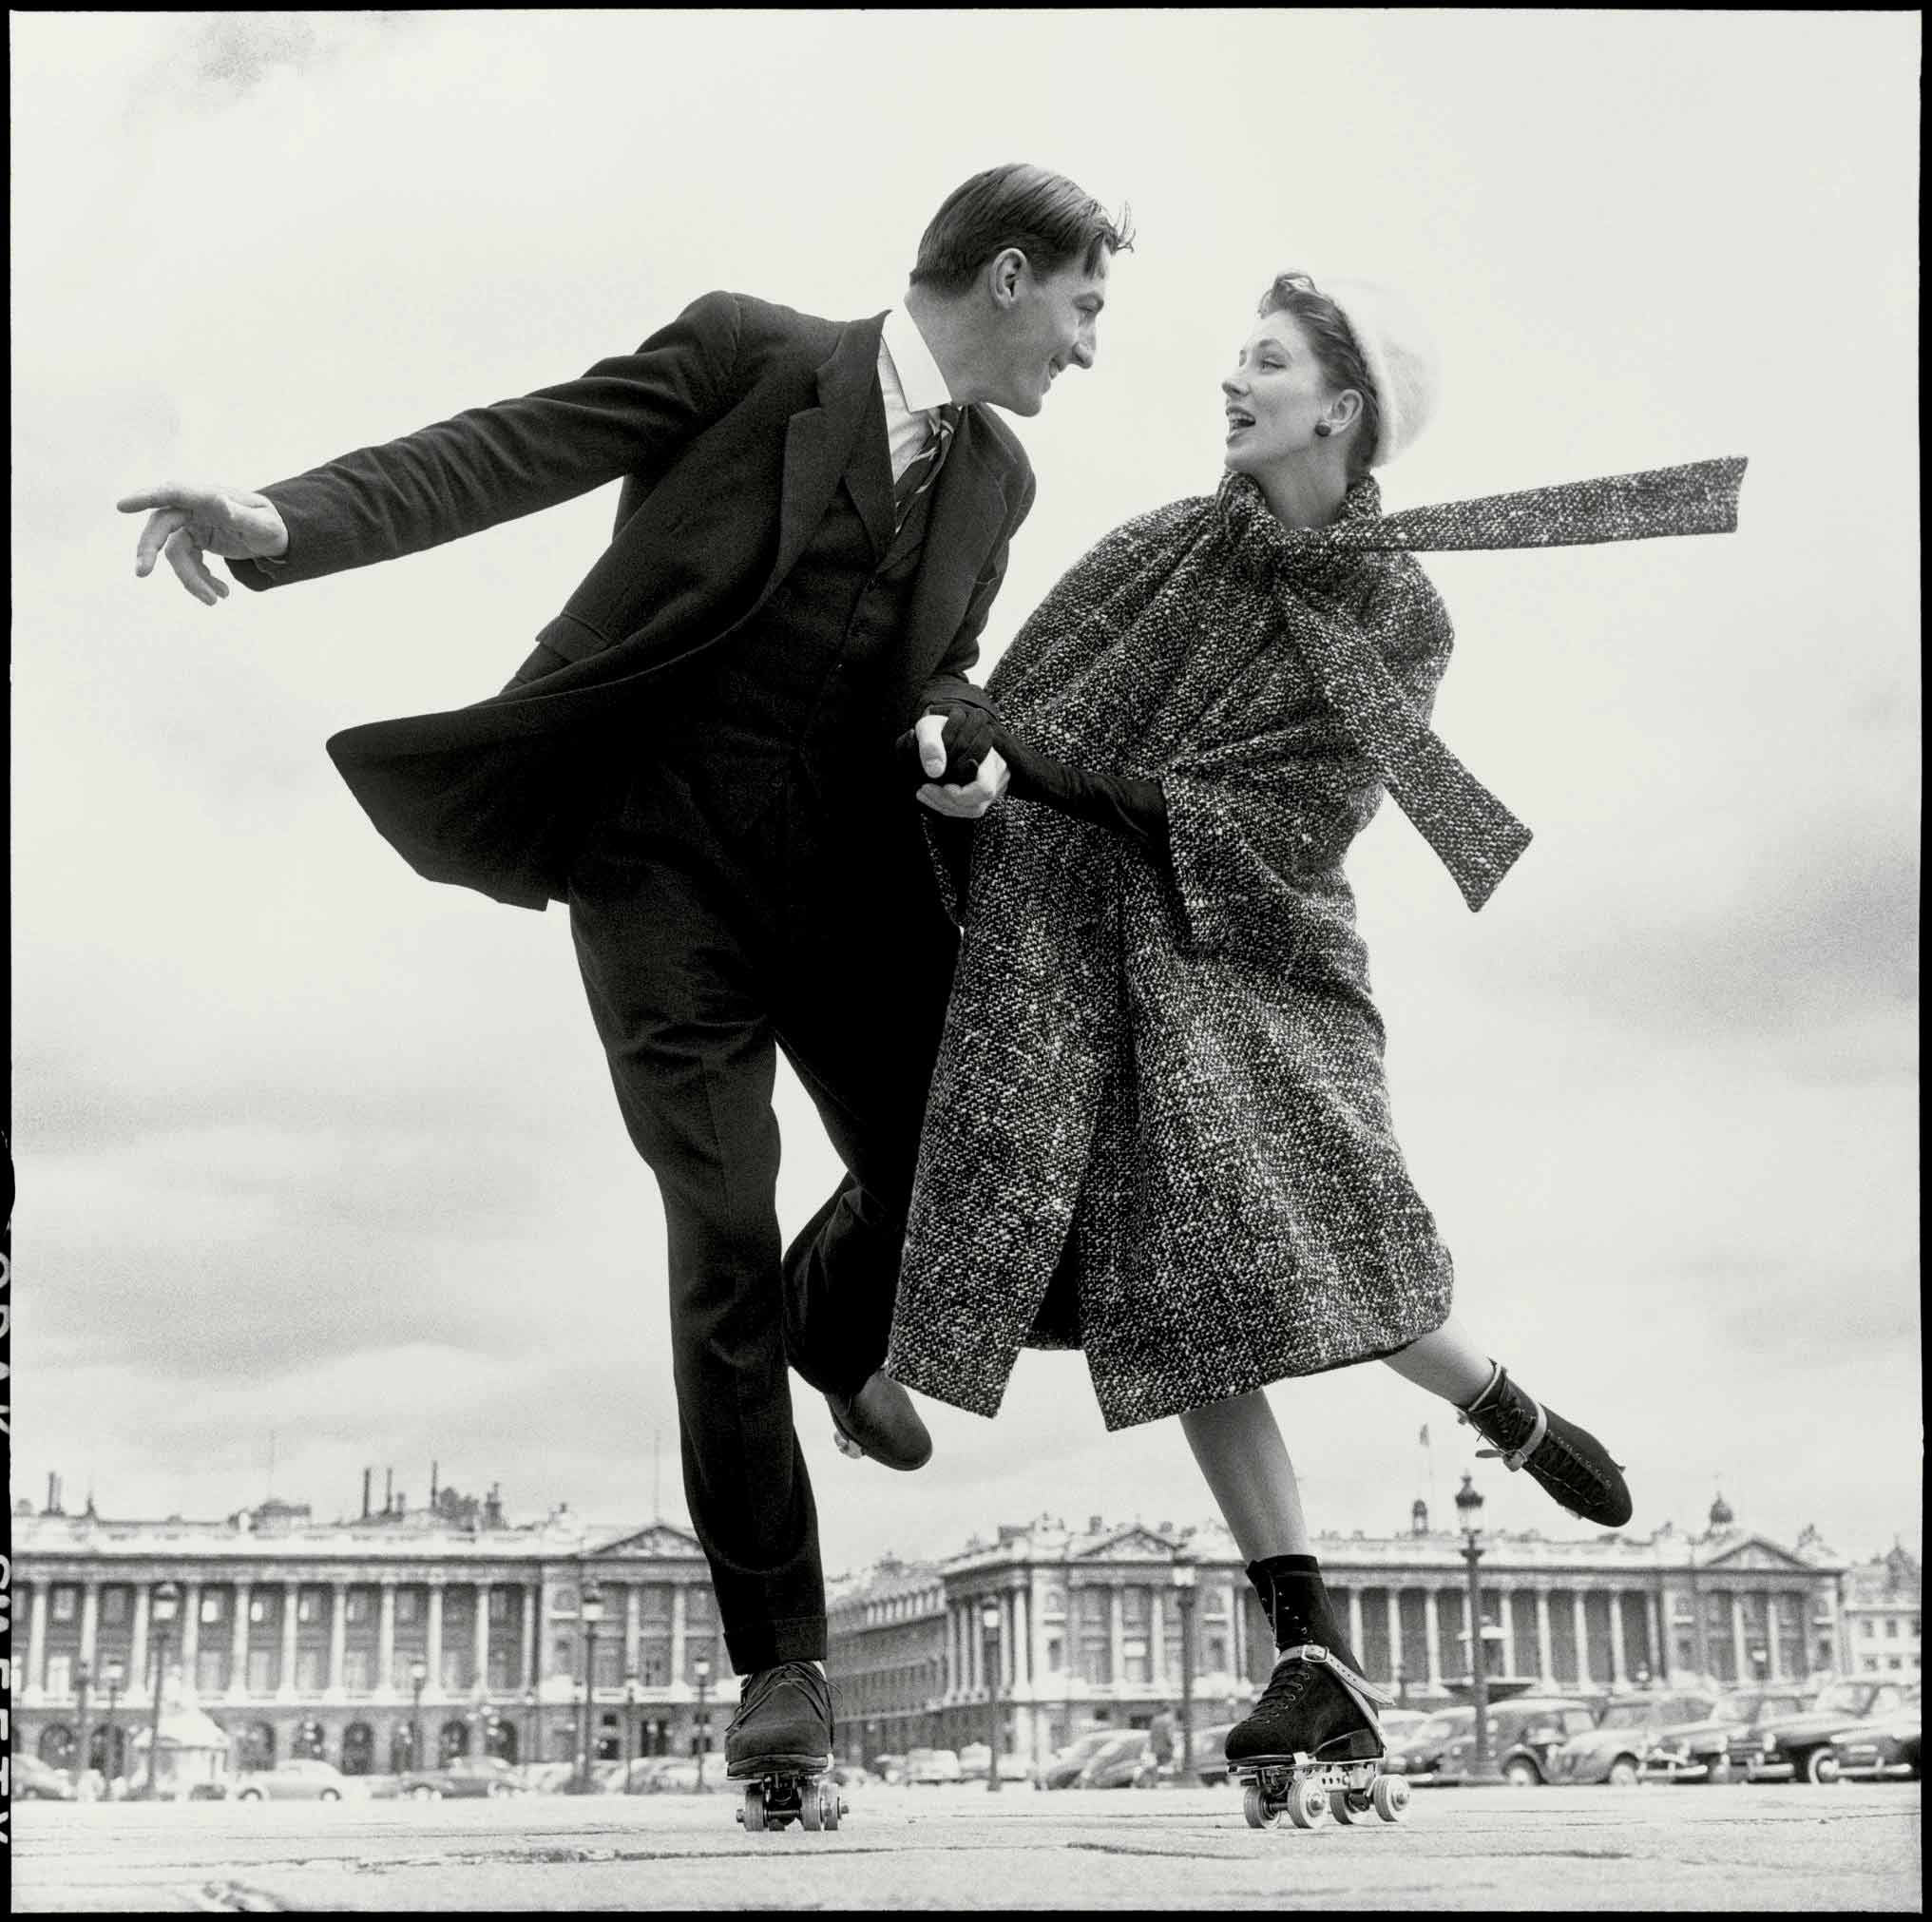 Suzy Parker and Robin Tattersall, Dress by Dior, Place de la Concorde, Paris, August 1956